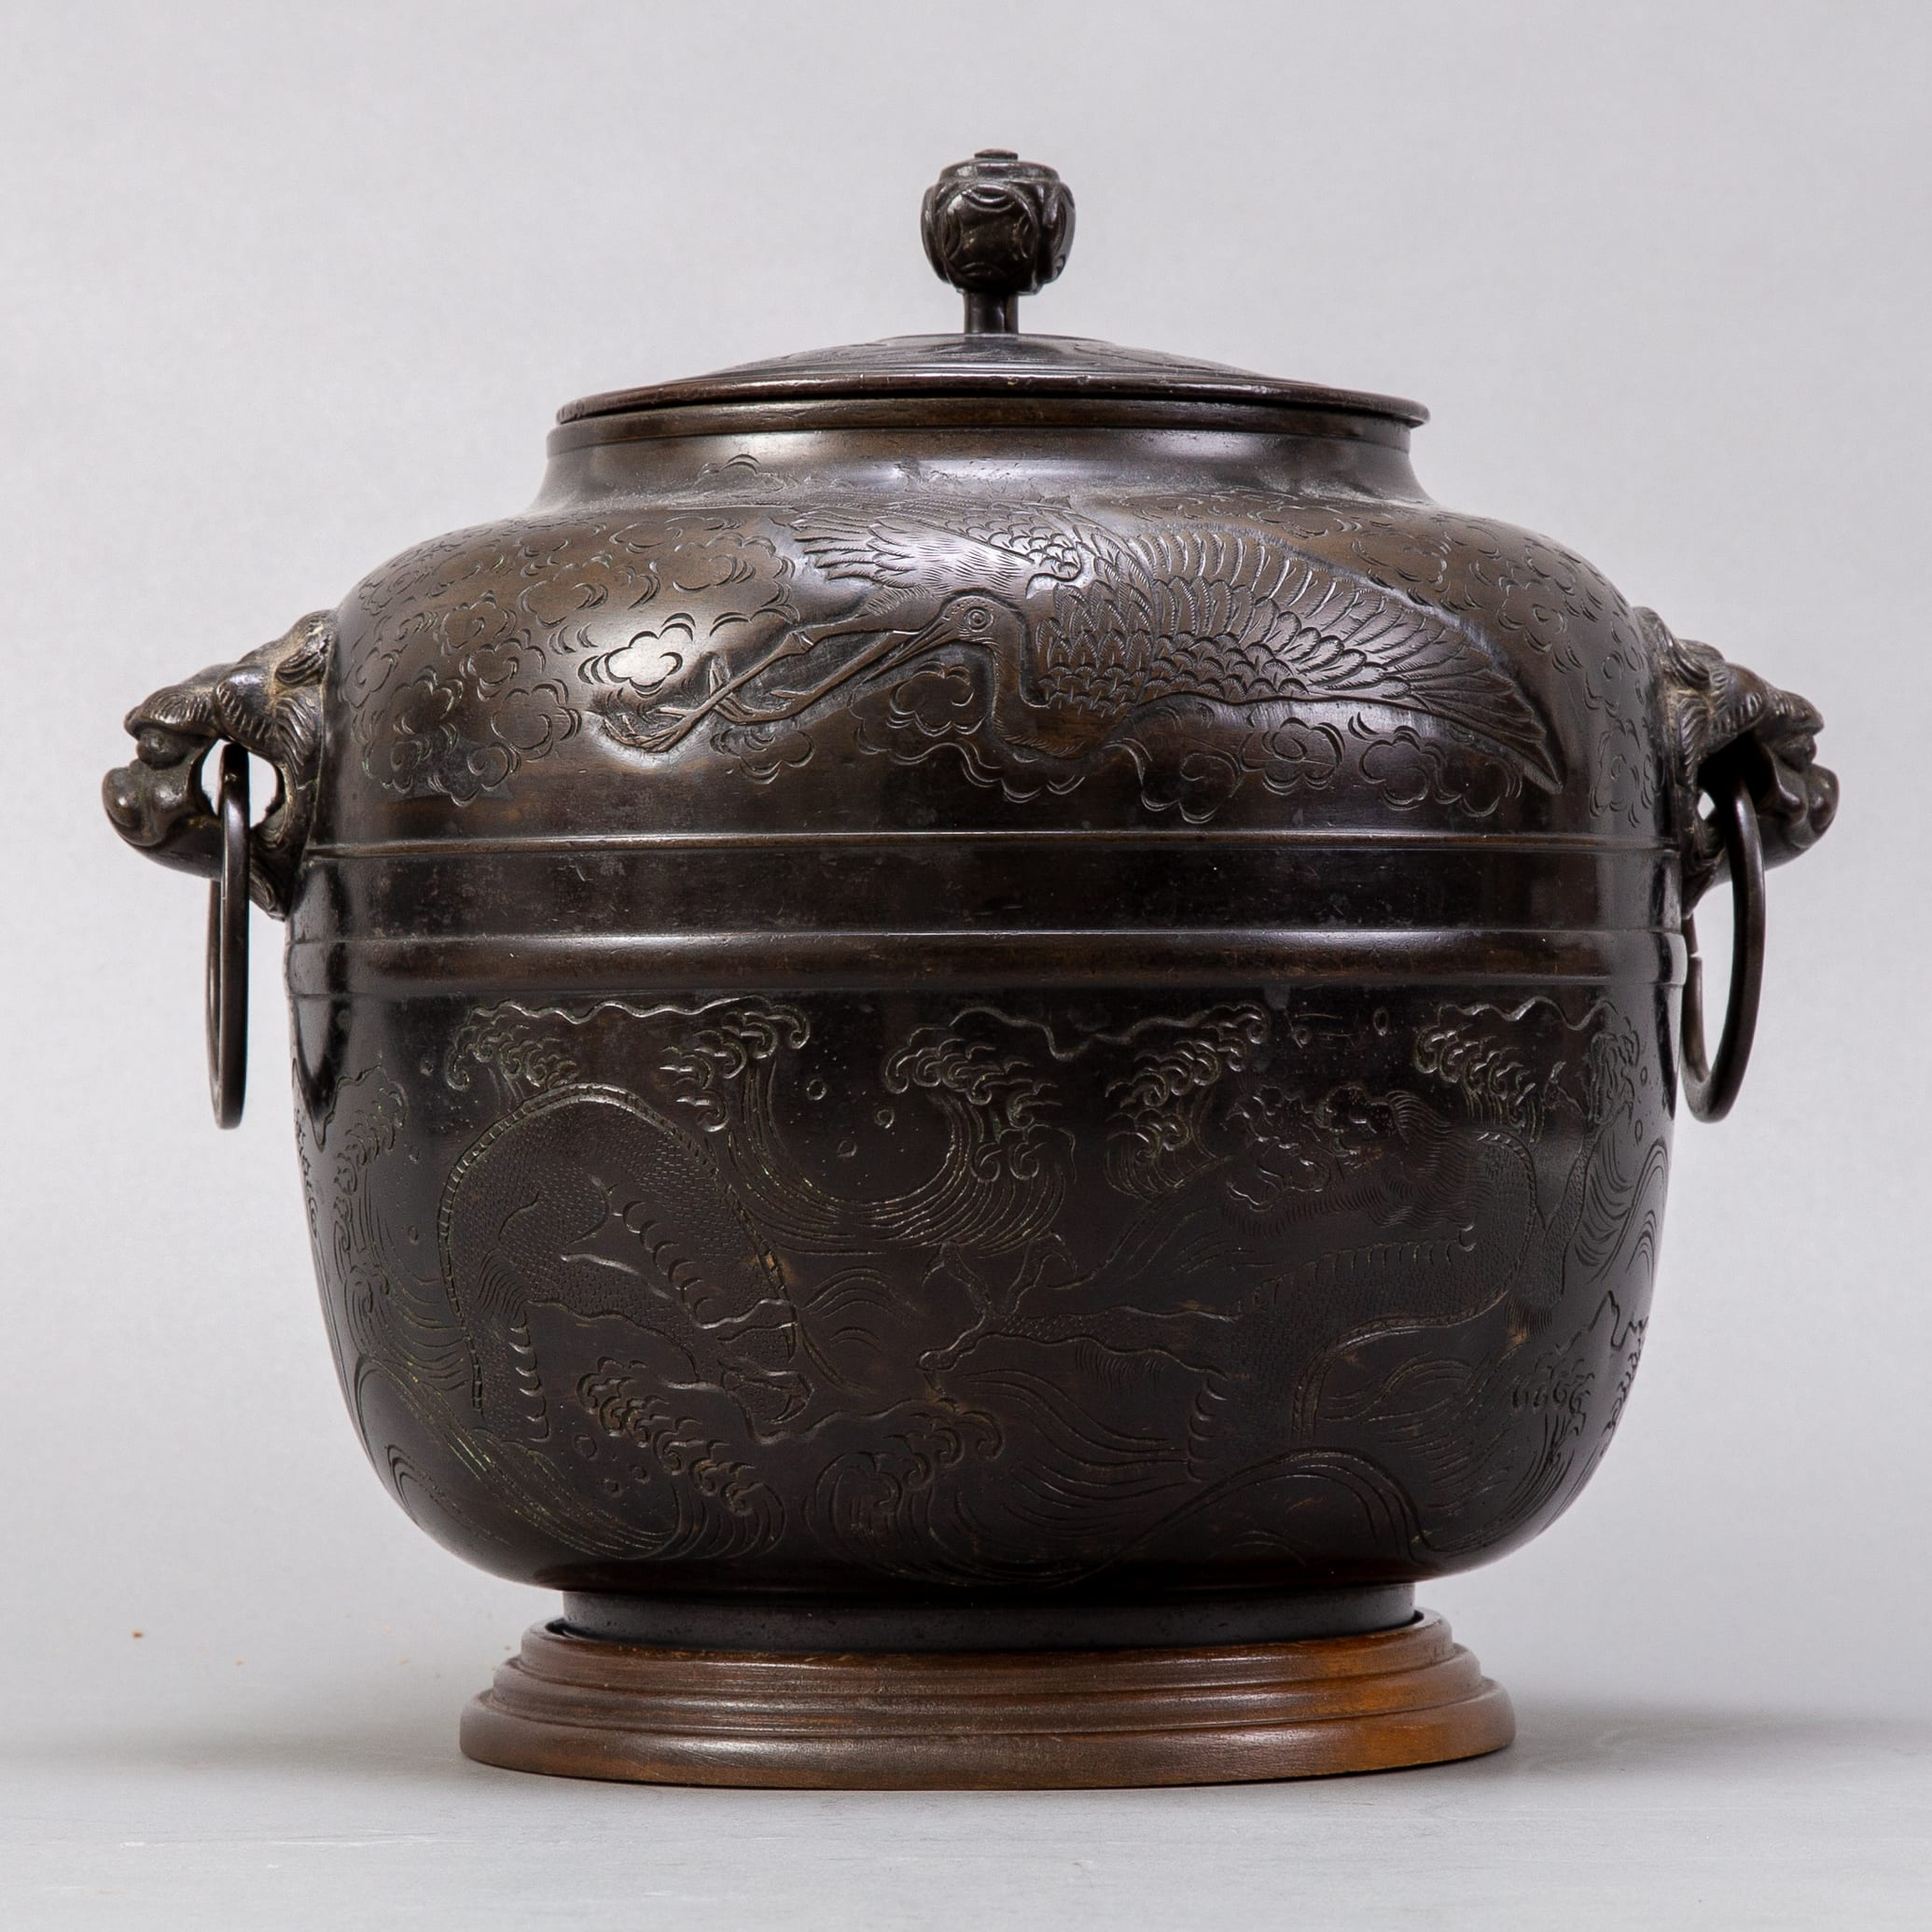 Lot 004: 19th c. Japanese Covered Bronze Pot in Oval Form